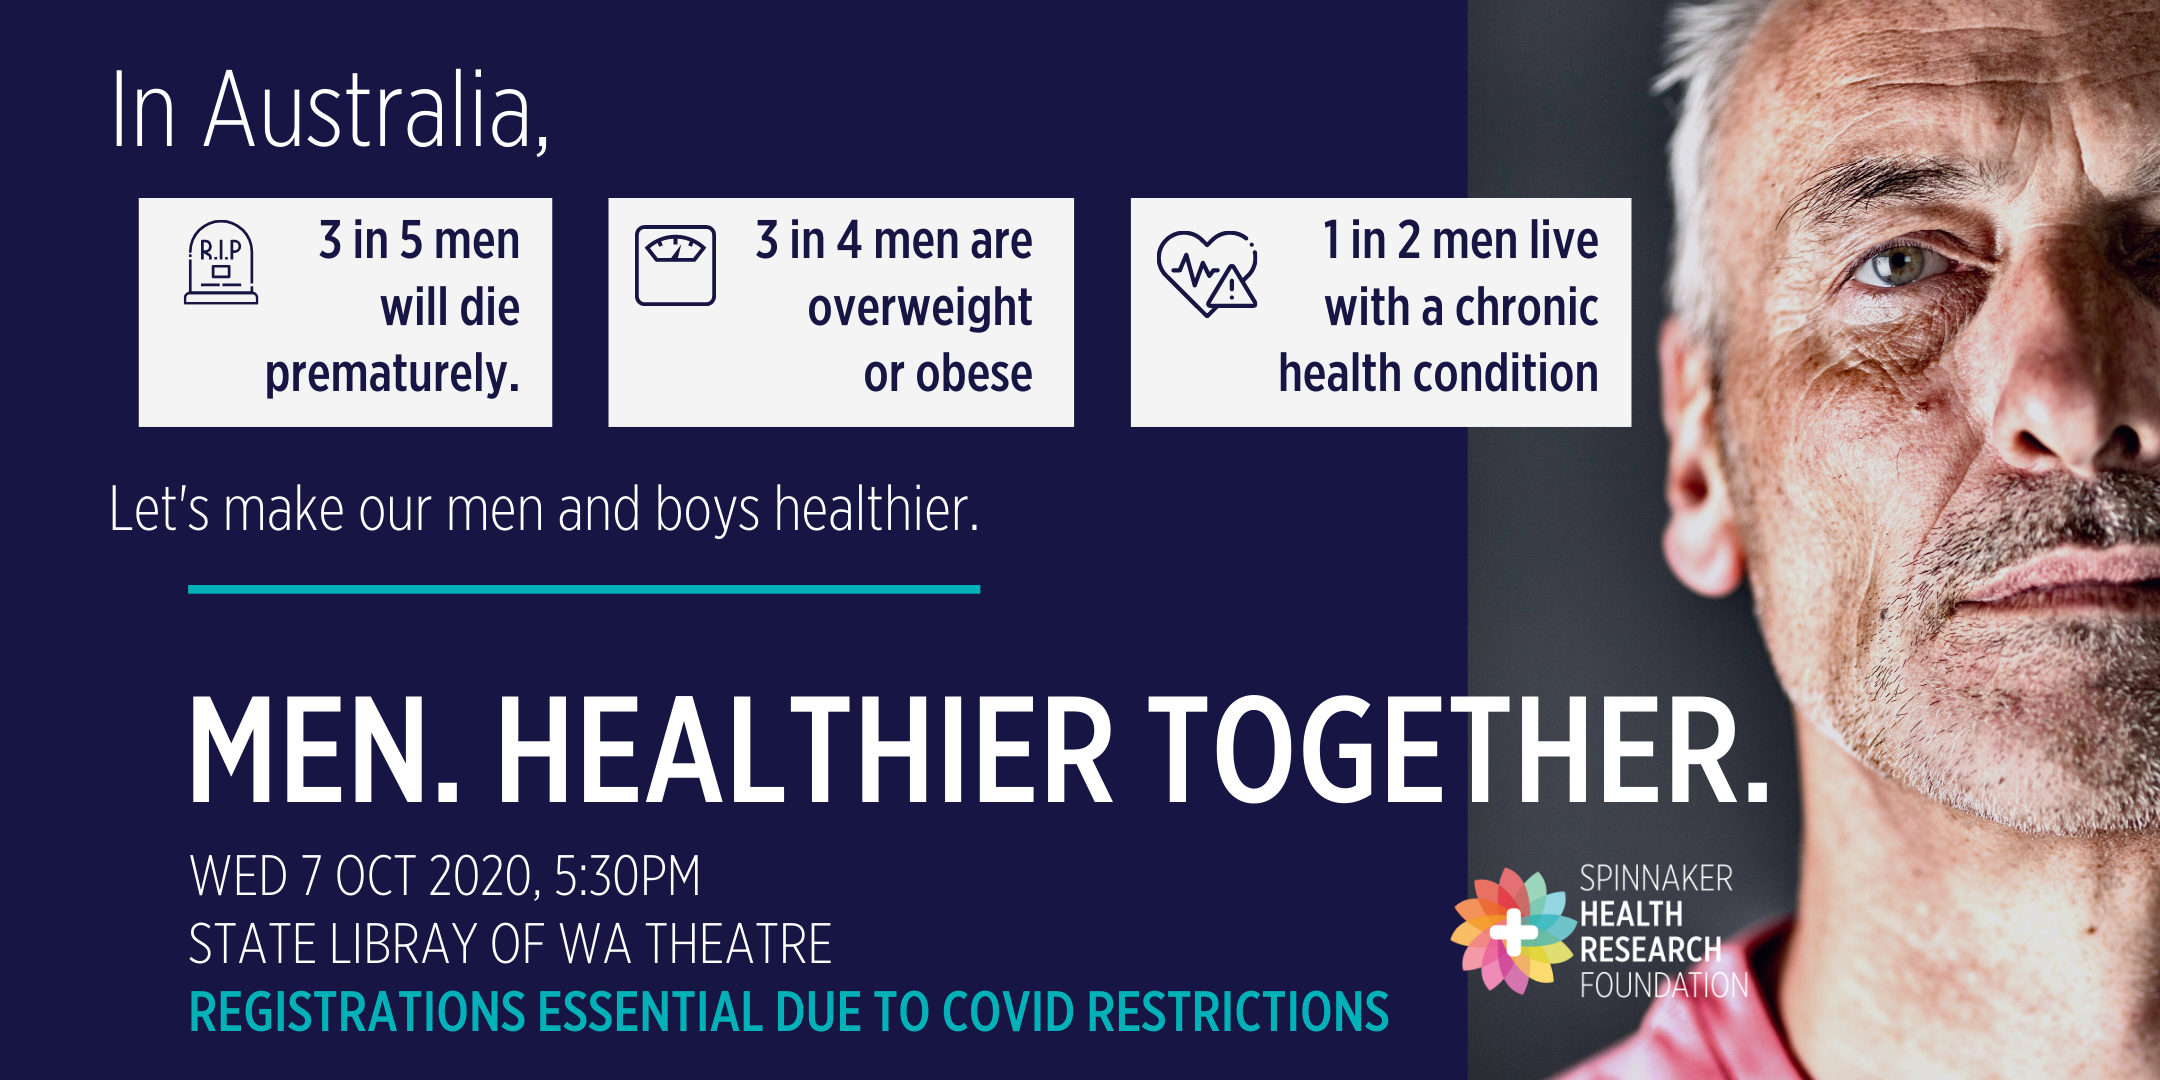 Men. Healthier Together.